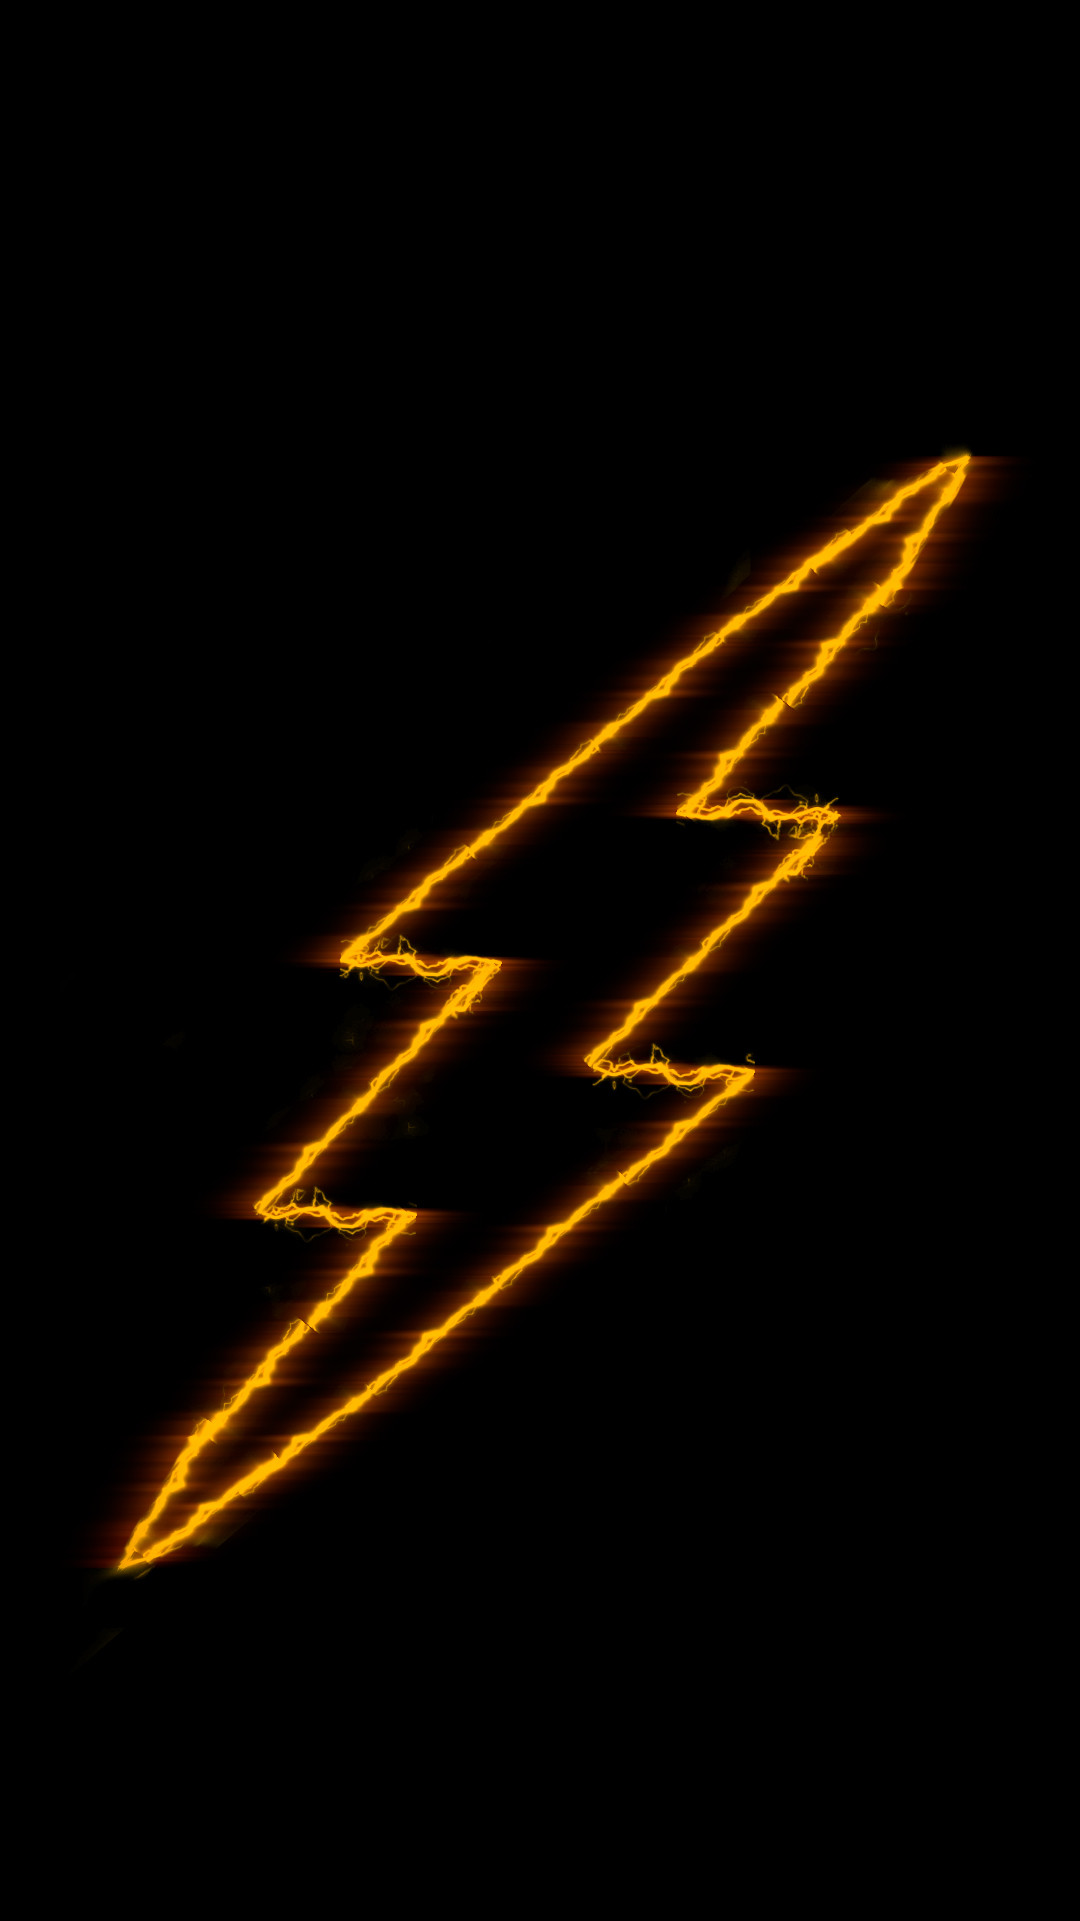 1080x1921 The Flash Logo Wallpaper Free Custom Made iPhone 6/6S wallpaper. Use for